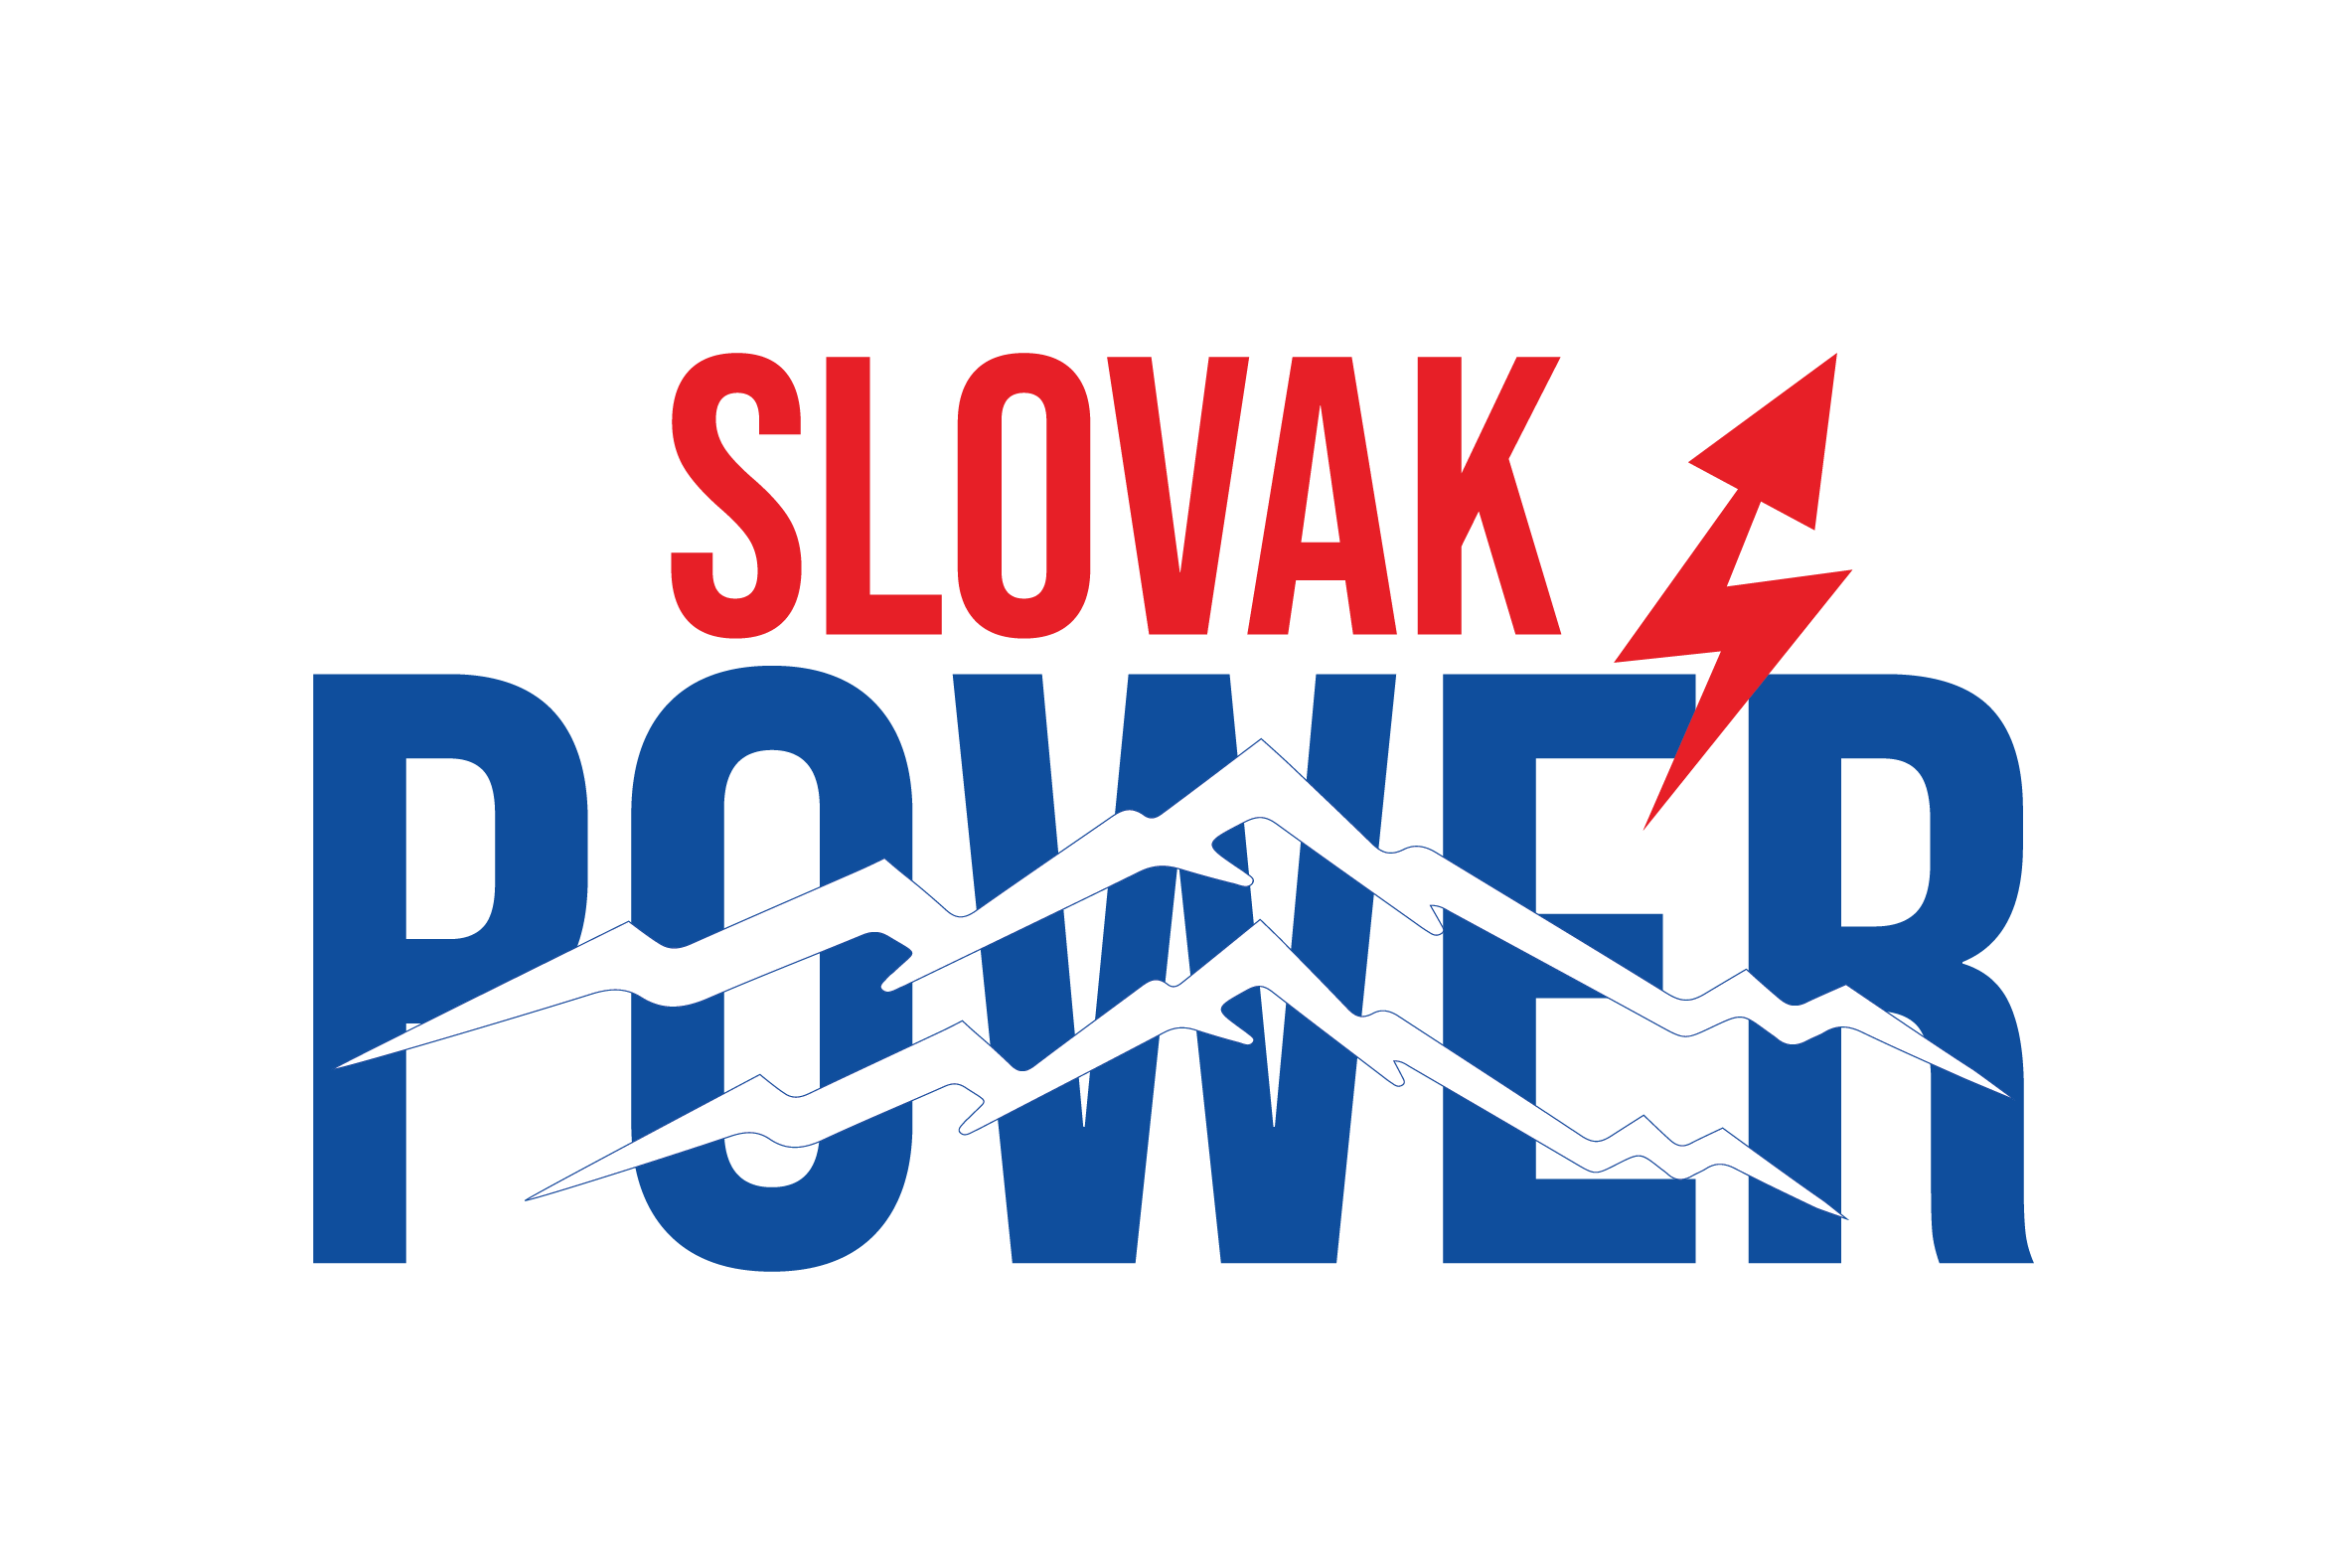 Slovak Power